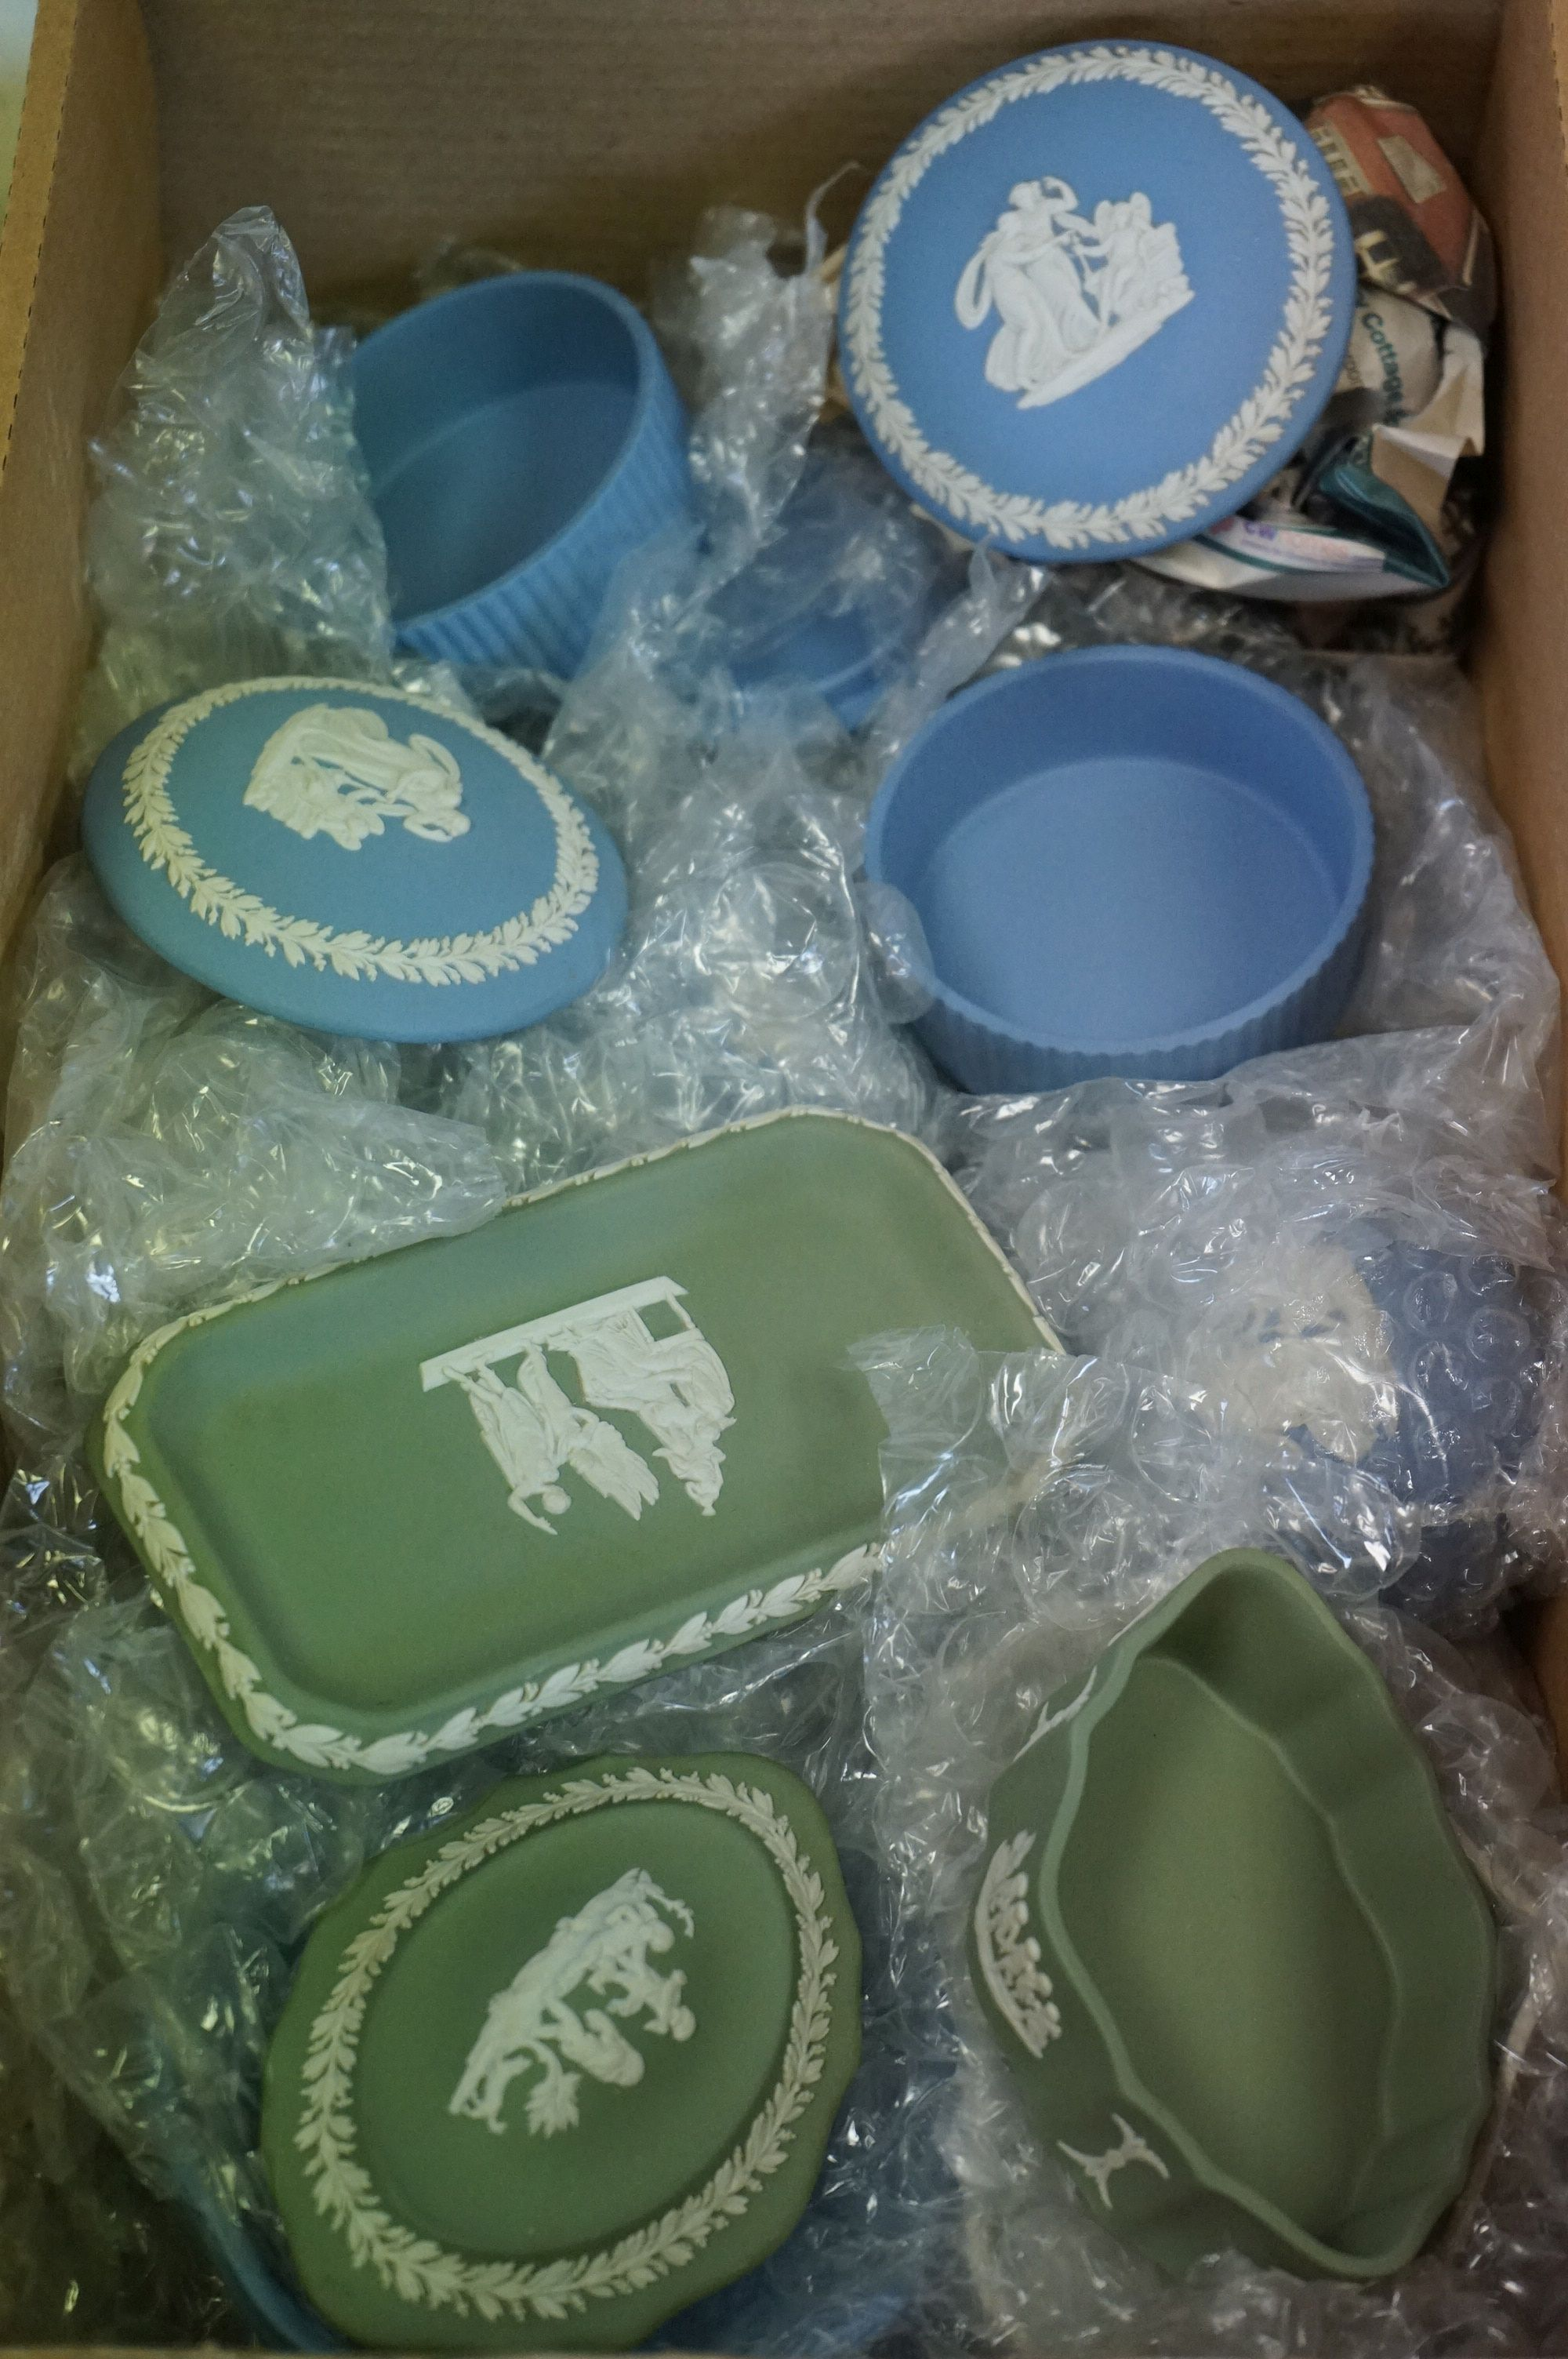 A collection of Wedgwood jasper ware to include trinket boxes and pin dishes.